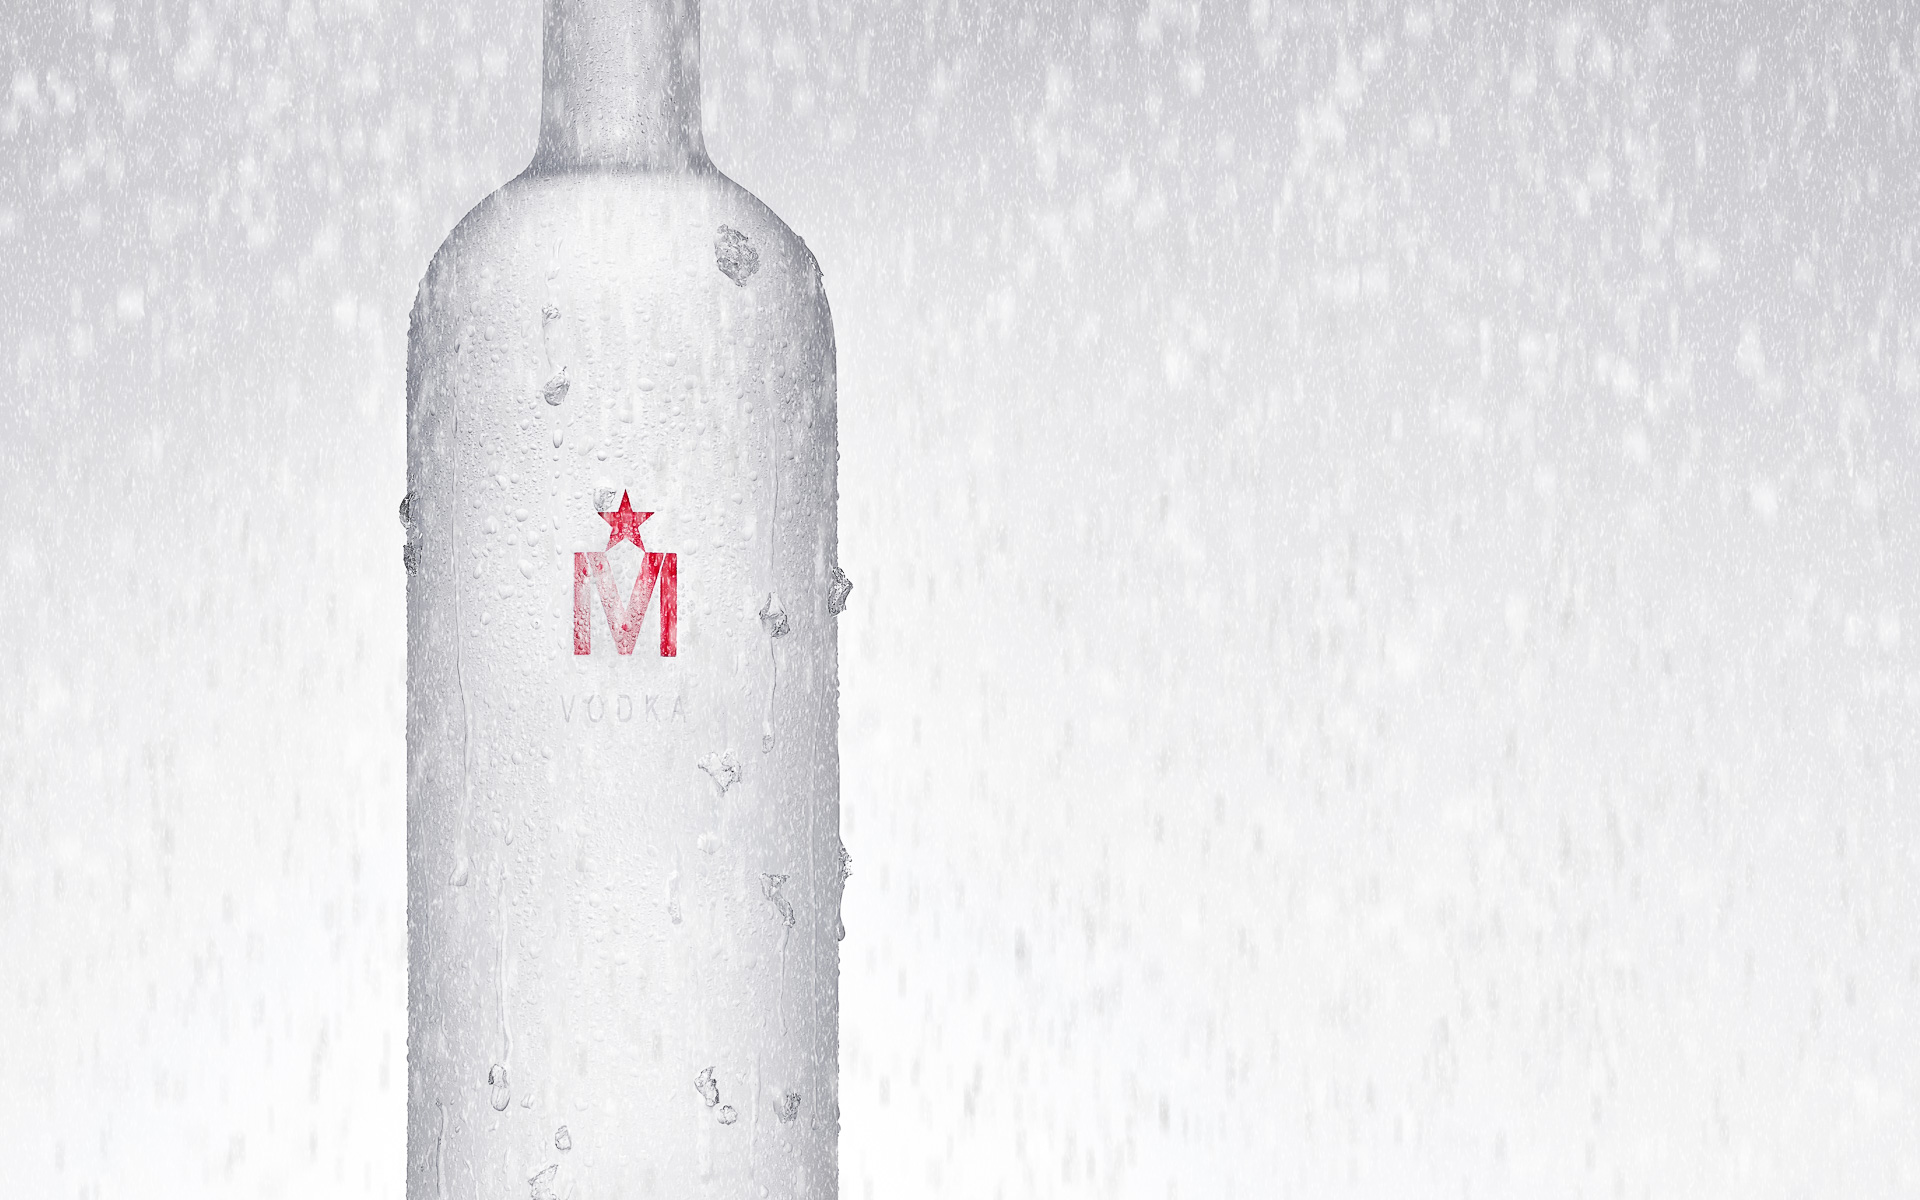 Medoyeff_Vodka_3_RT